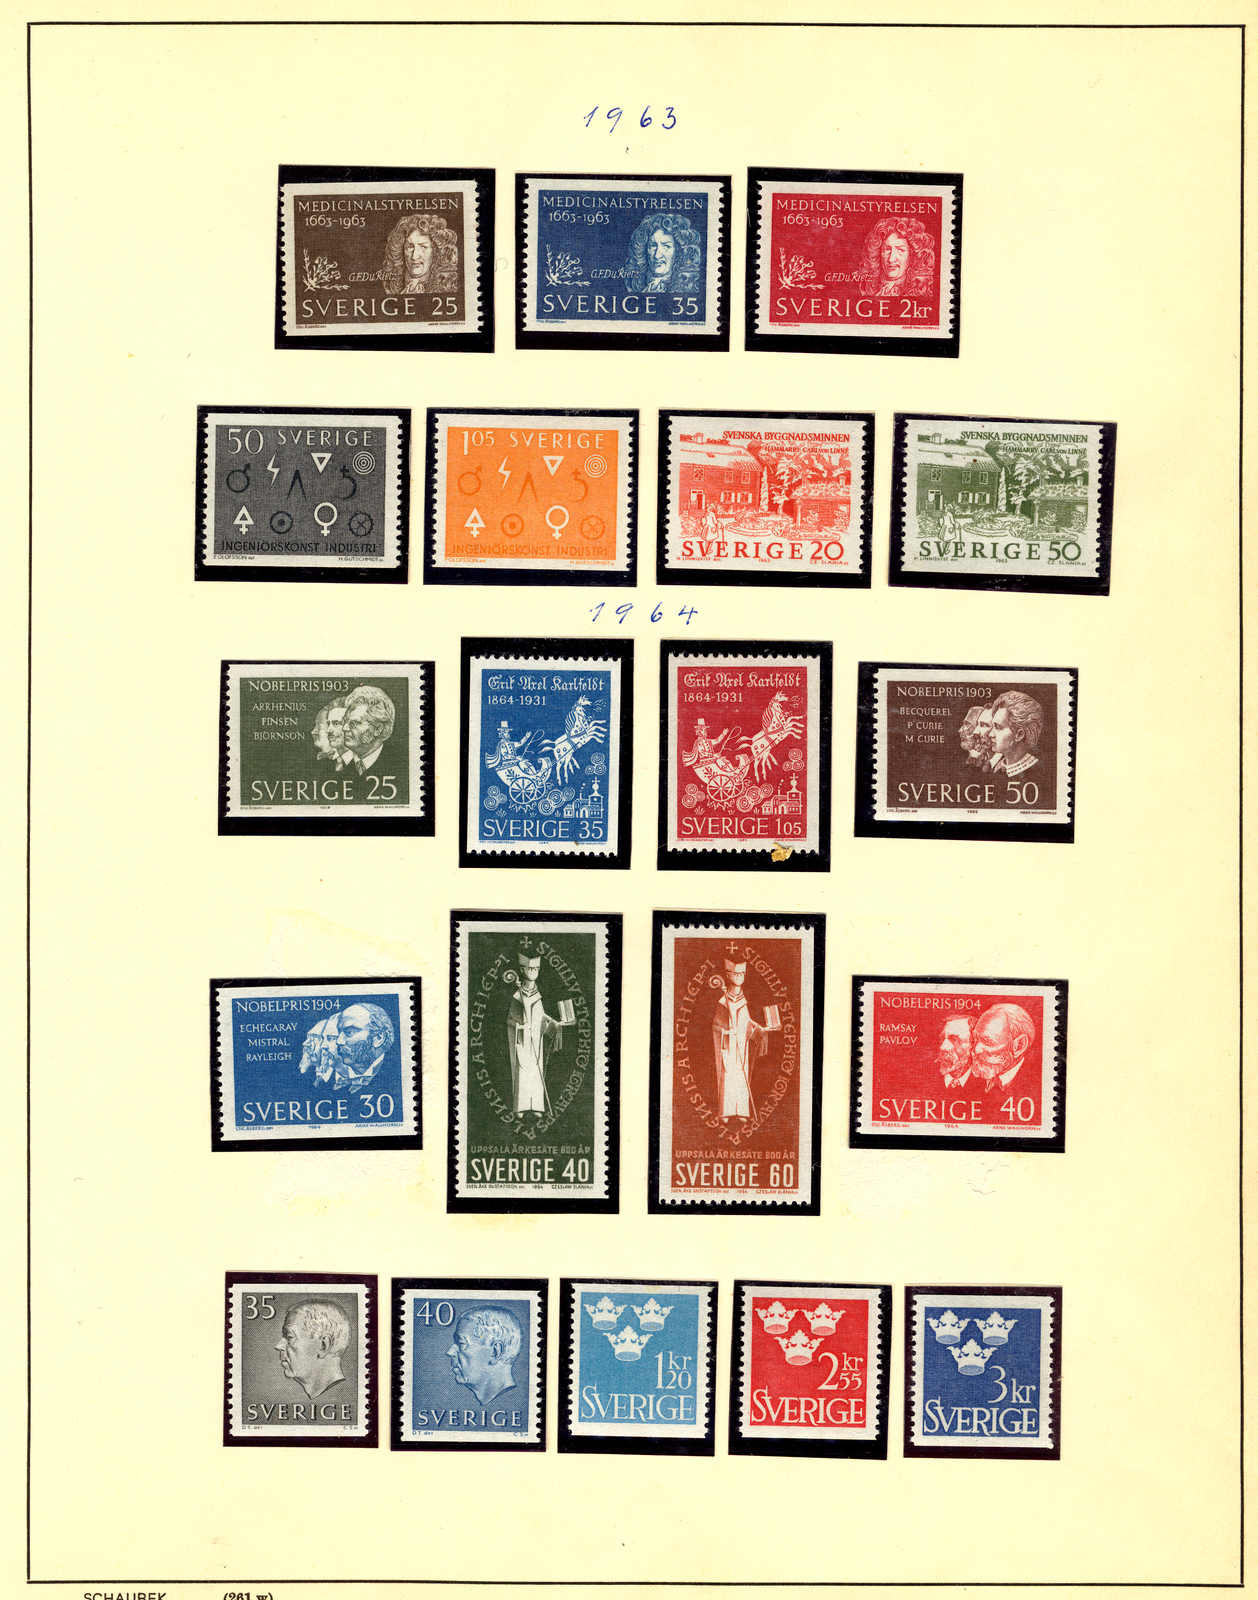 Lot 10312 - europe collections and lots scandinavia -  classicphil GmbH 3 rd classicphil Auction - VIENNA- AUSTRIA